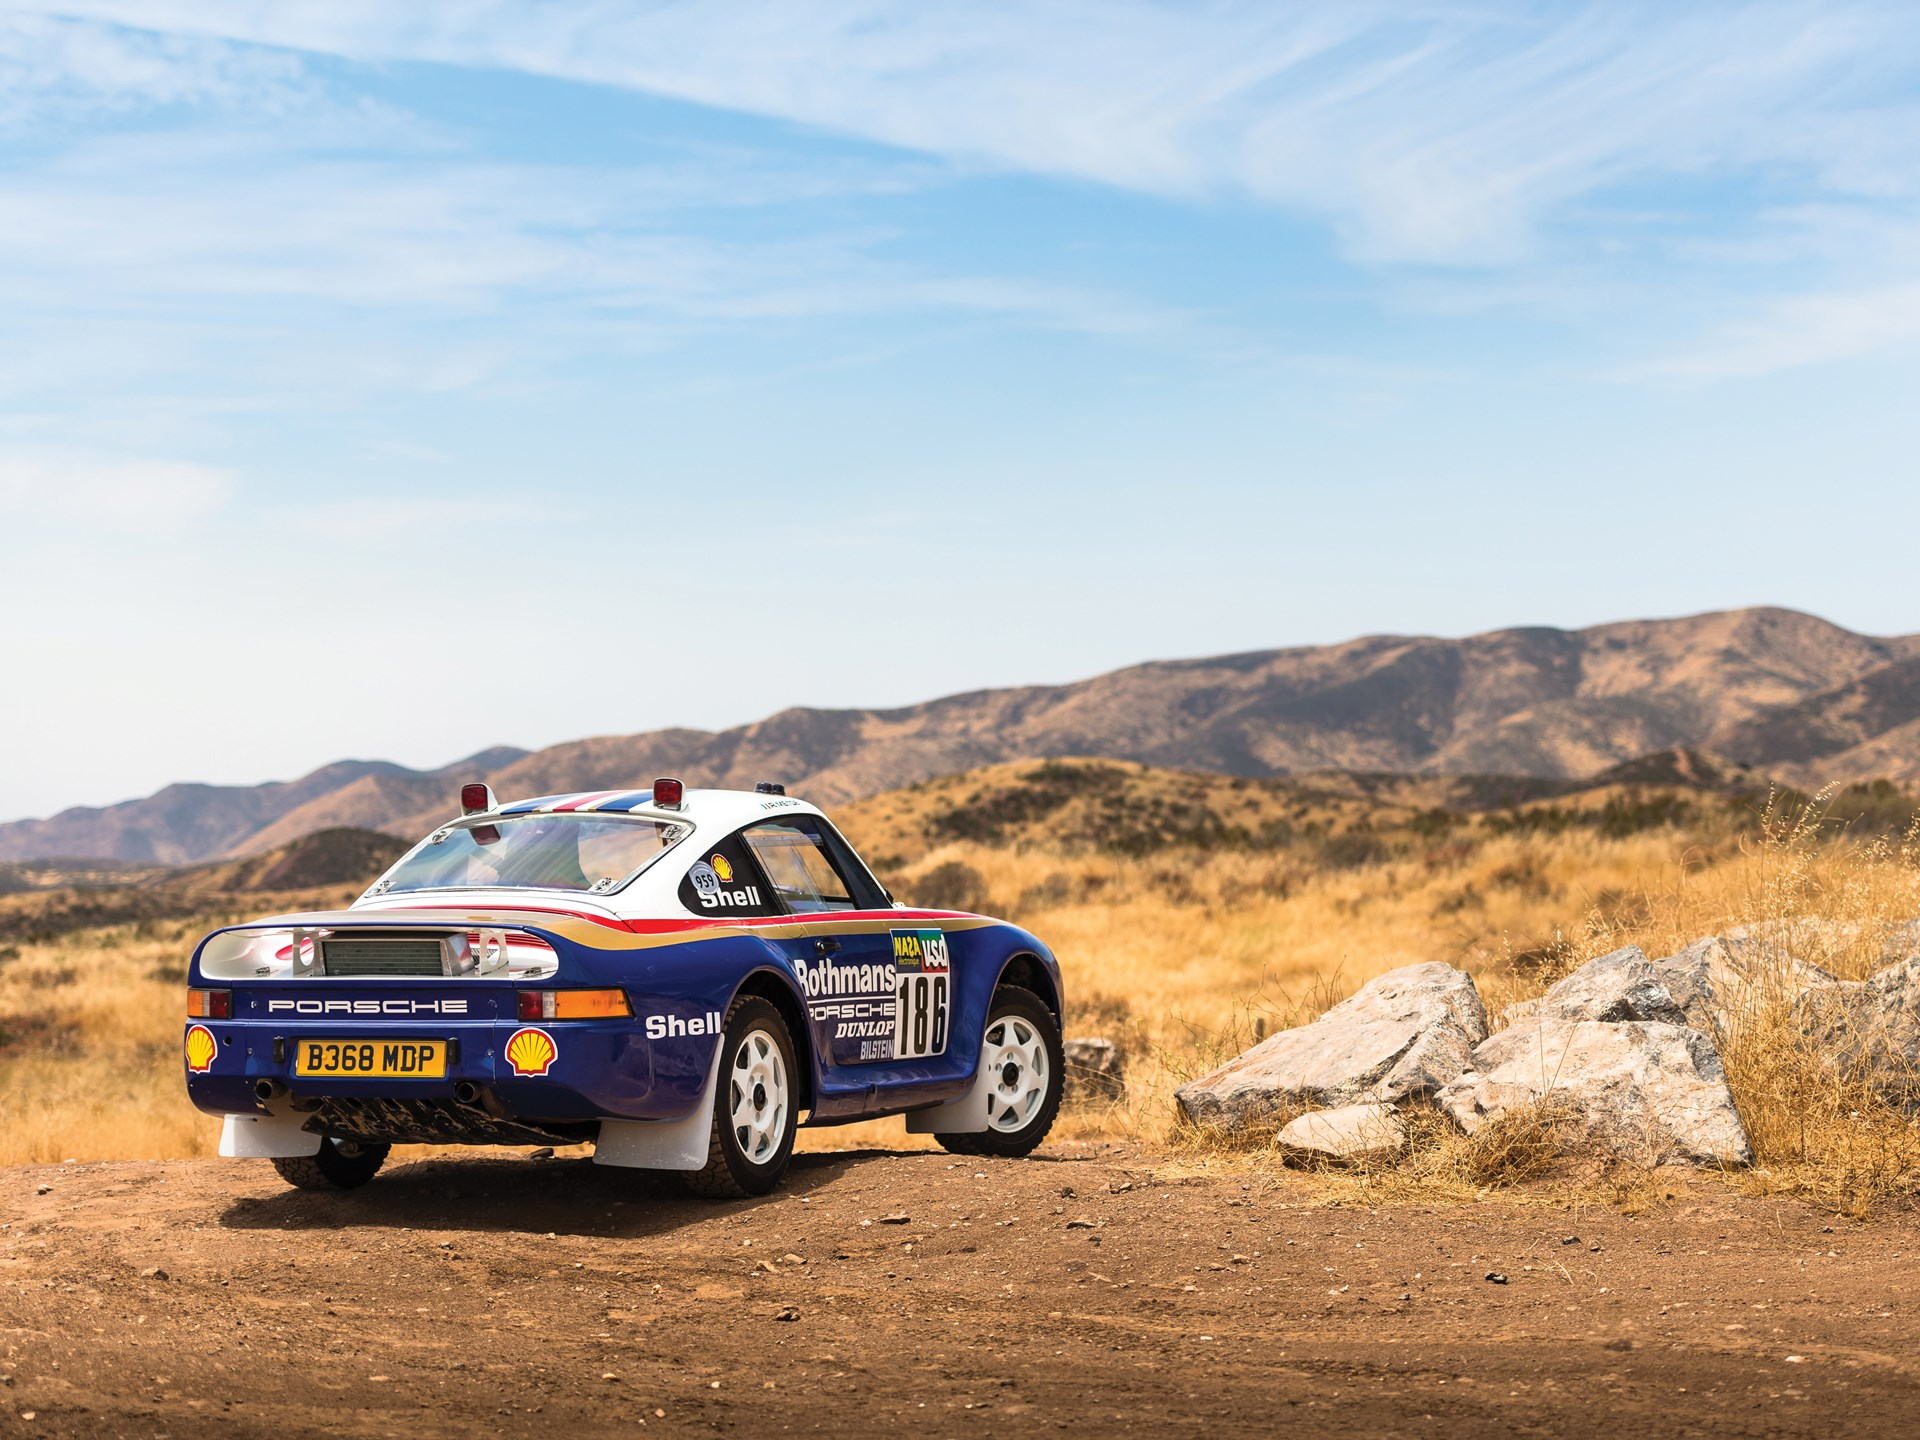 1985 Porsche 959 Paris-Dakar rear 3/4 mountain